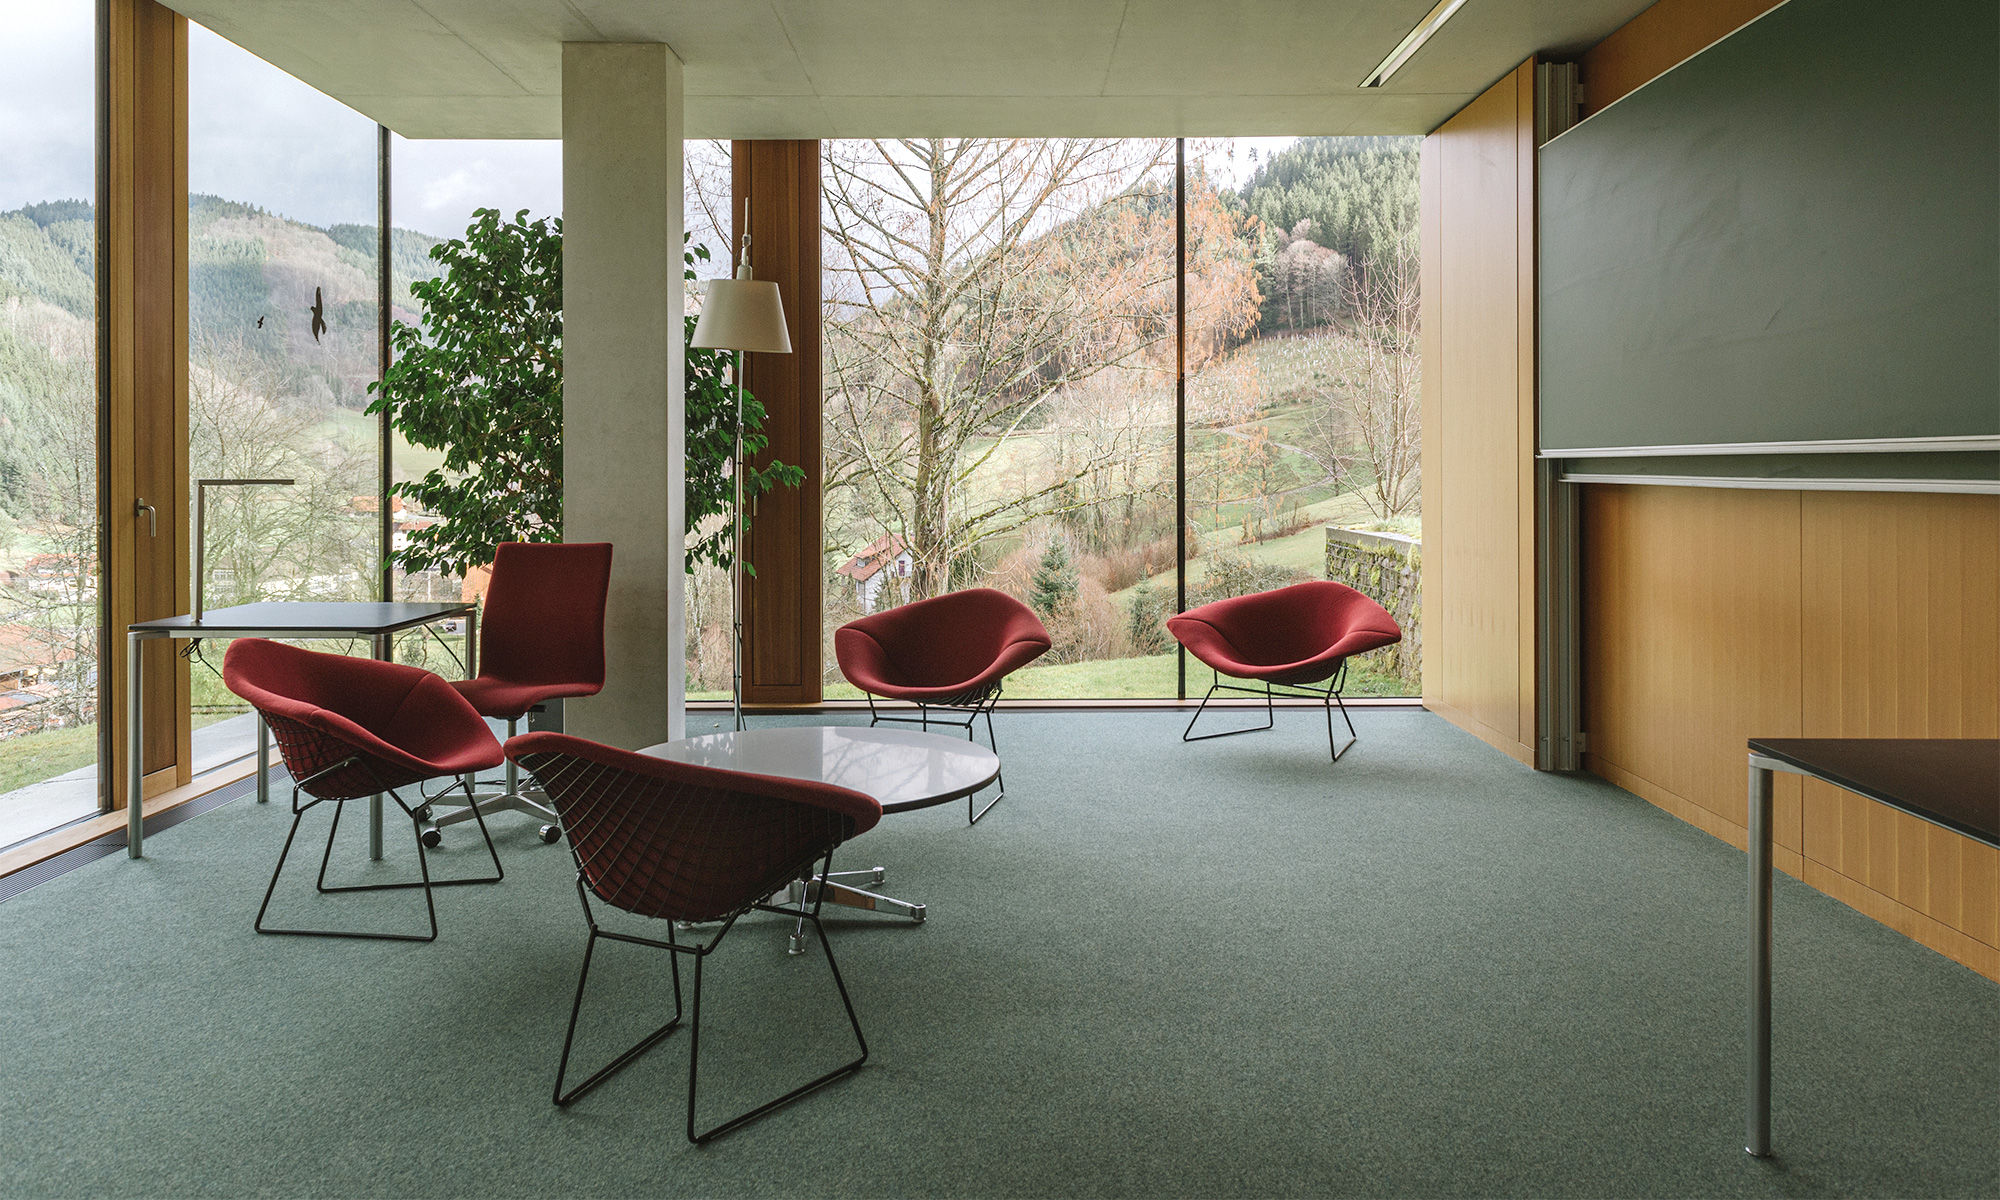 Photo of chairs, tables and a chalkboard at Oberwolfach, in front of a wide window revealing forests outside